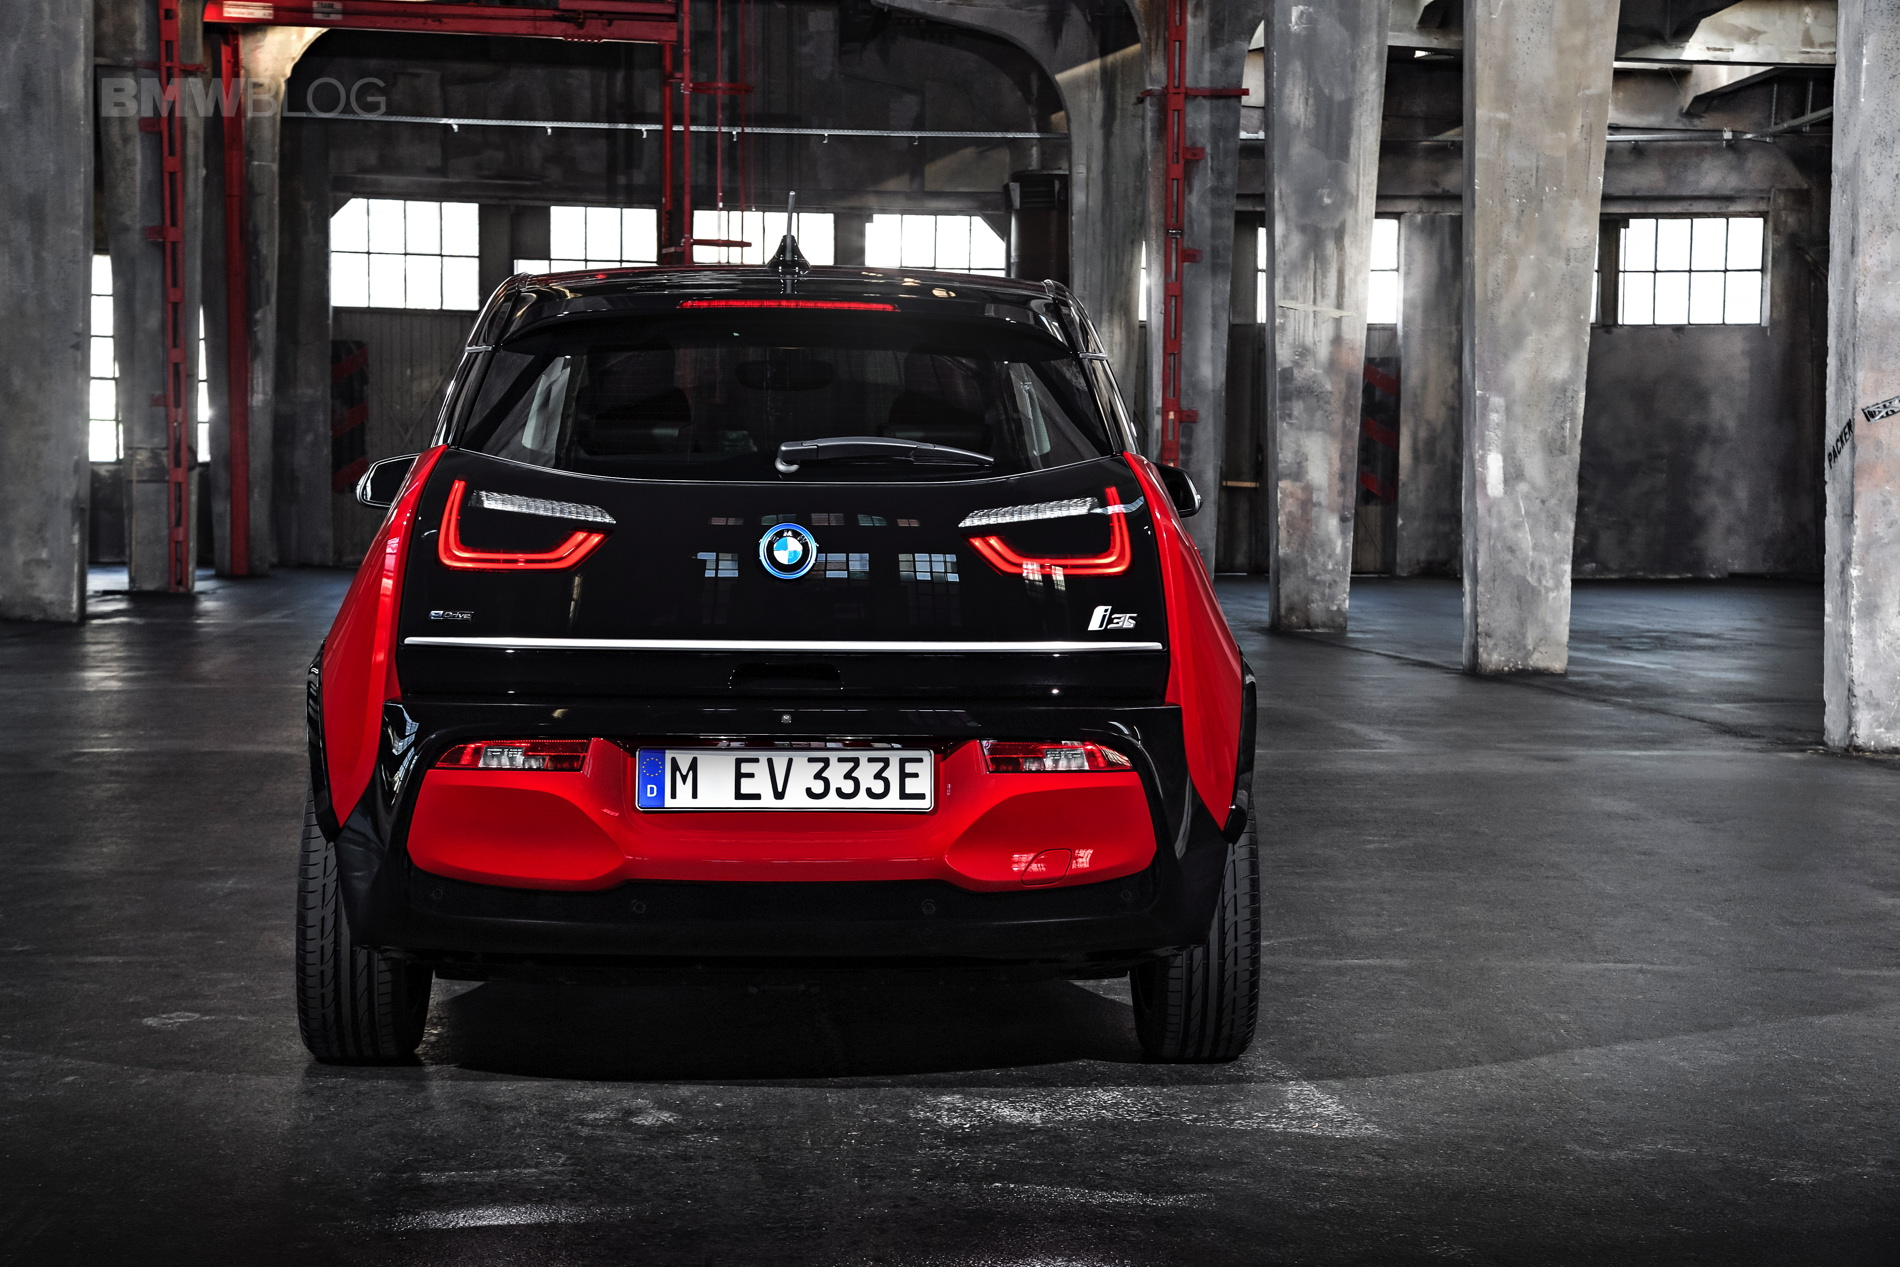 From The Outside Its Not That Much Different Than Newly Facelifted BMW I3 It Features All Of Same New Design Cues Shapes And Trim Pieces